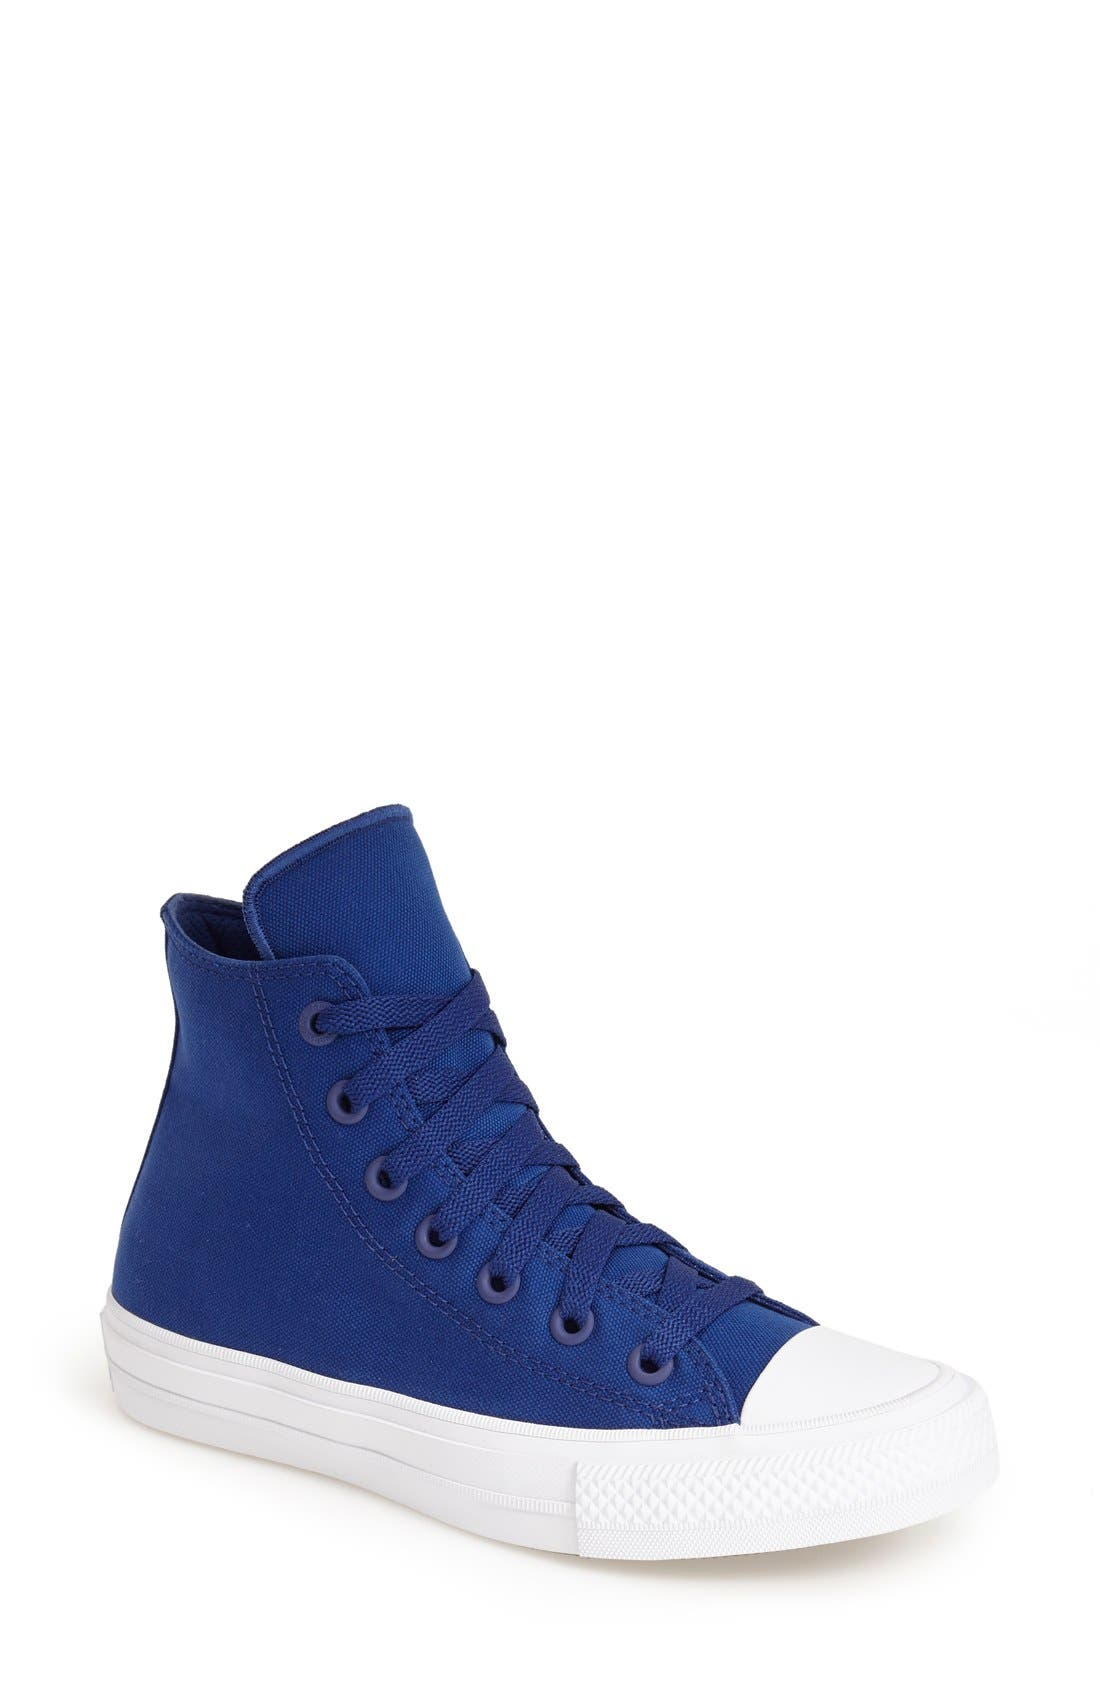 Main Image - Converse Chuck Taylor® All Star® 'Chuck II' High Top Sneaker (Women) (Regular Retail Price: $74.95)